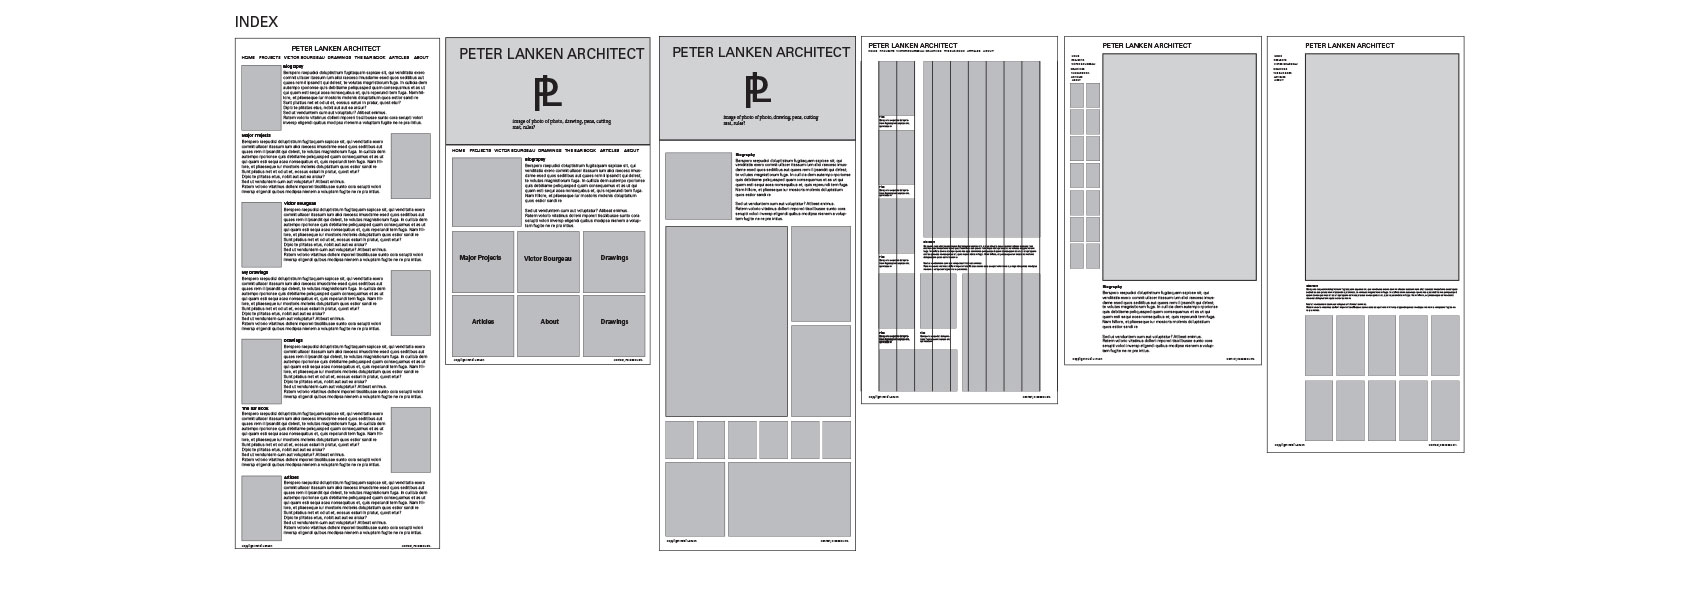 Wireframes for Peter Lanken's website